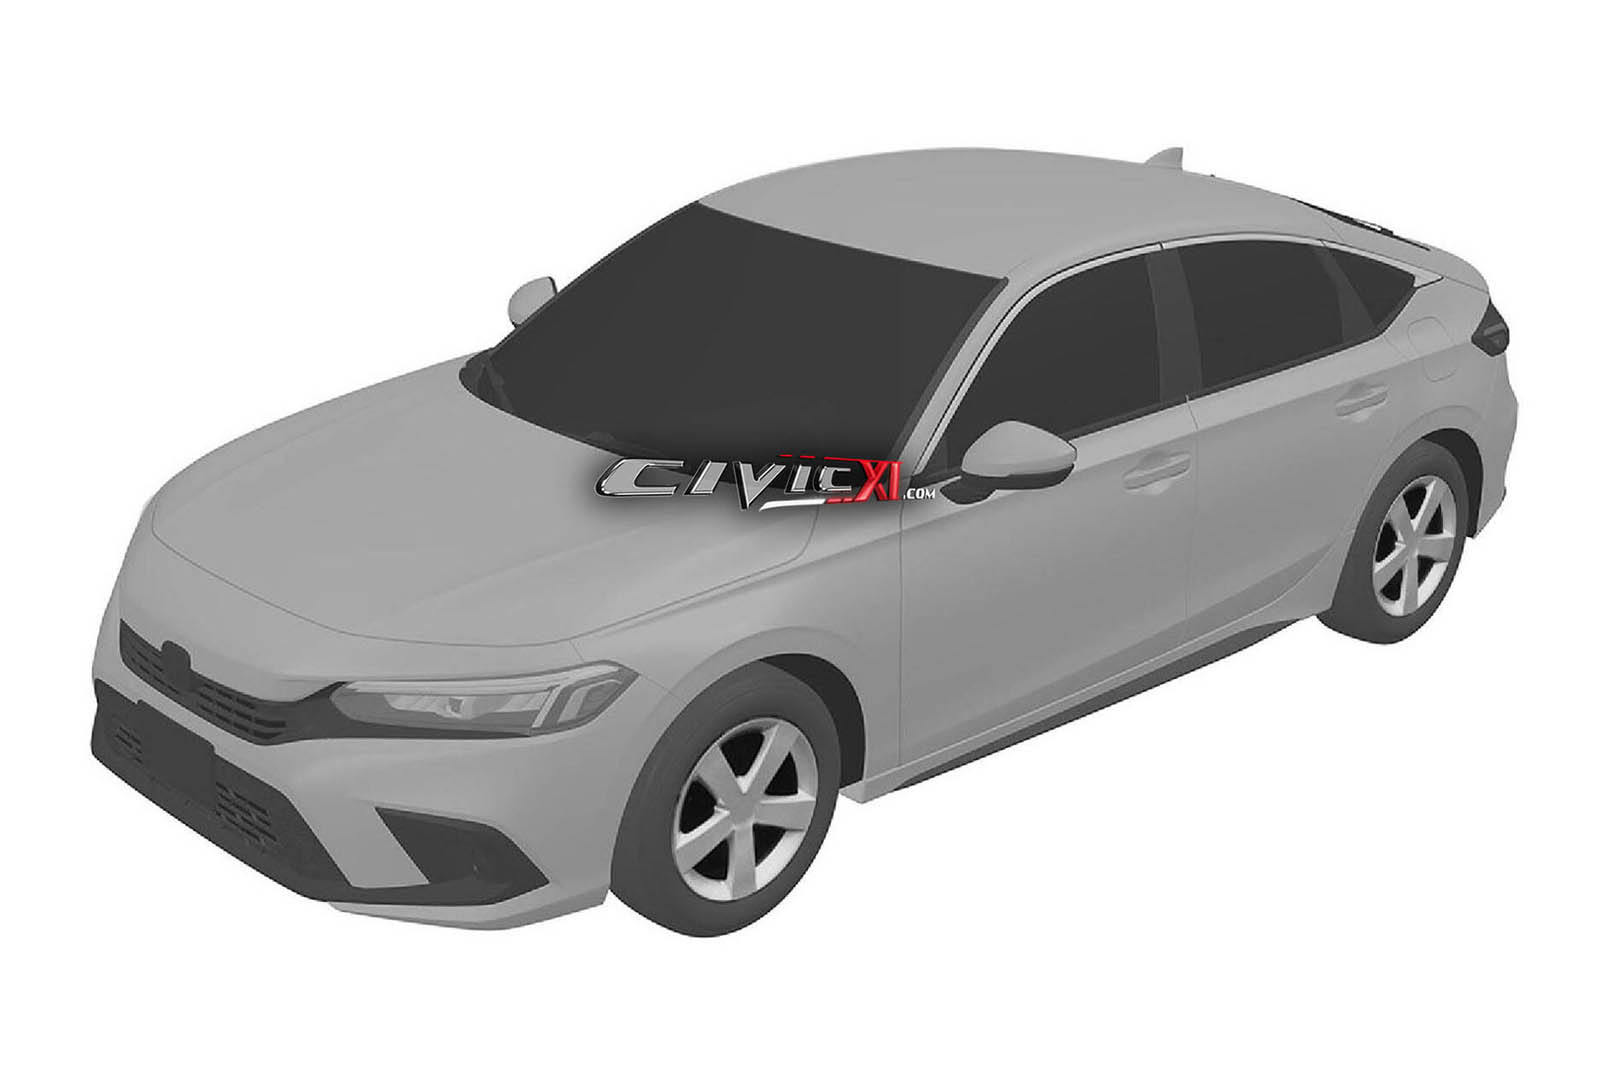 2022 Honda Civic previewed in leaked patent images | Autocar